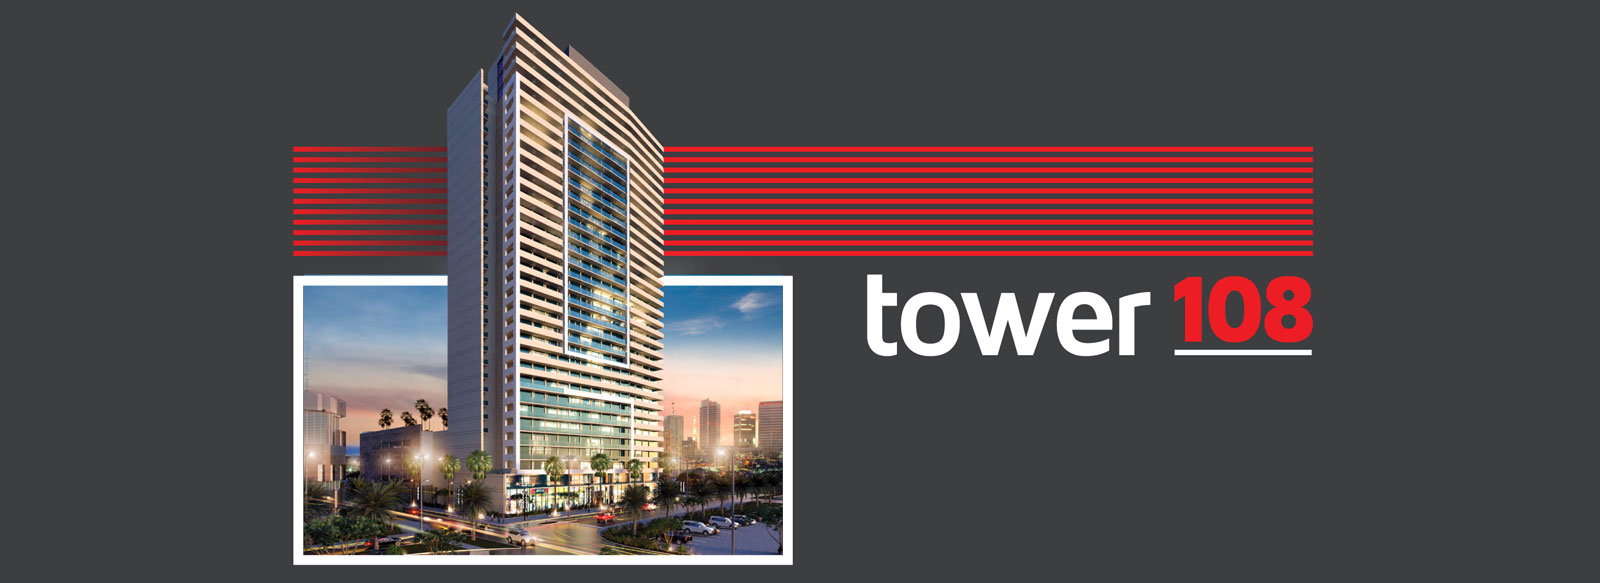 Tower 108 Exclusive Offer